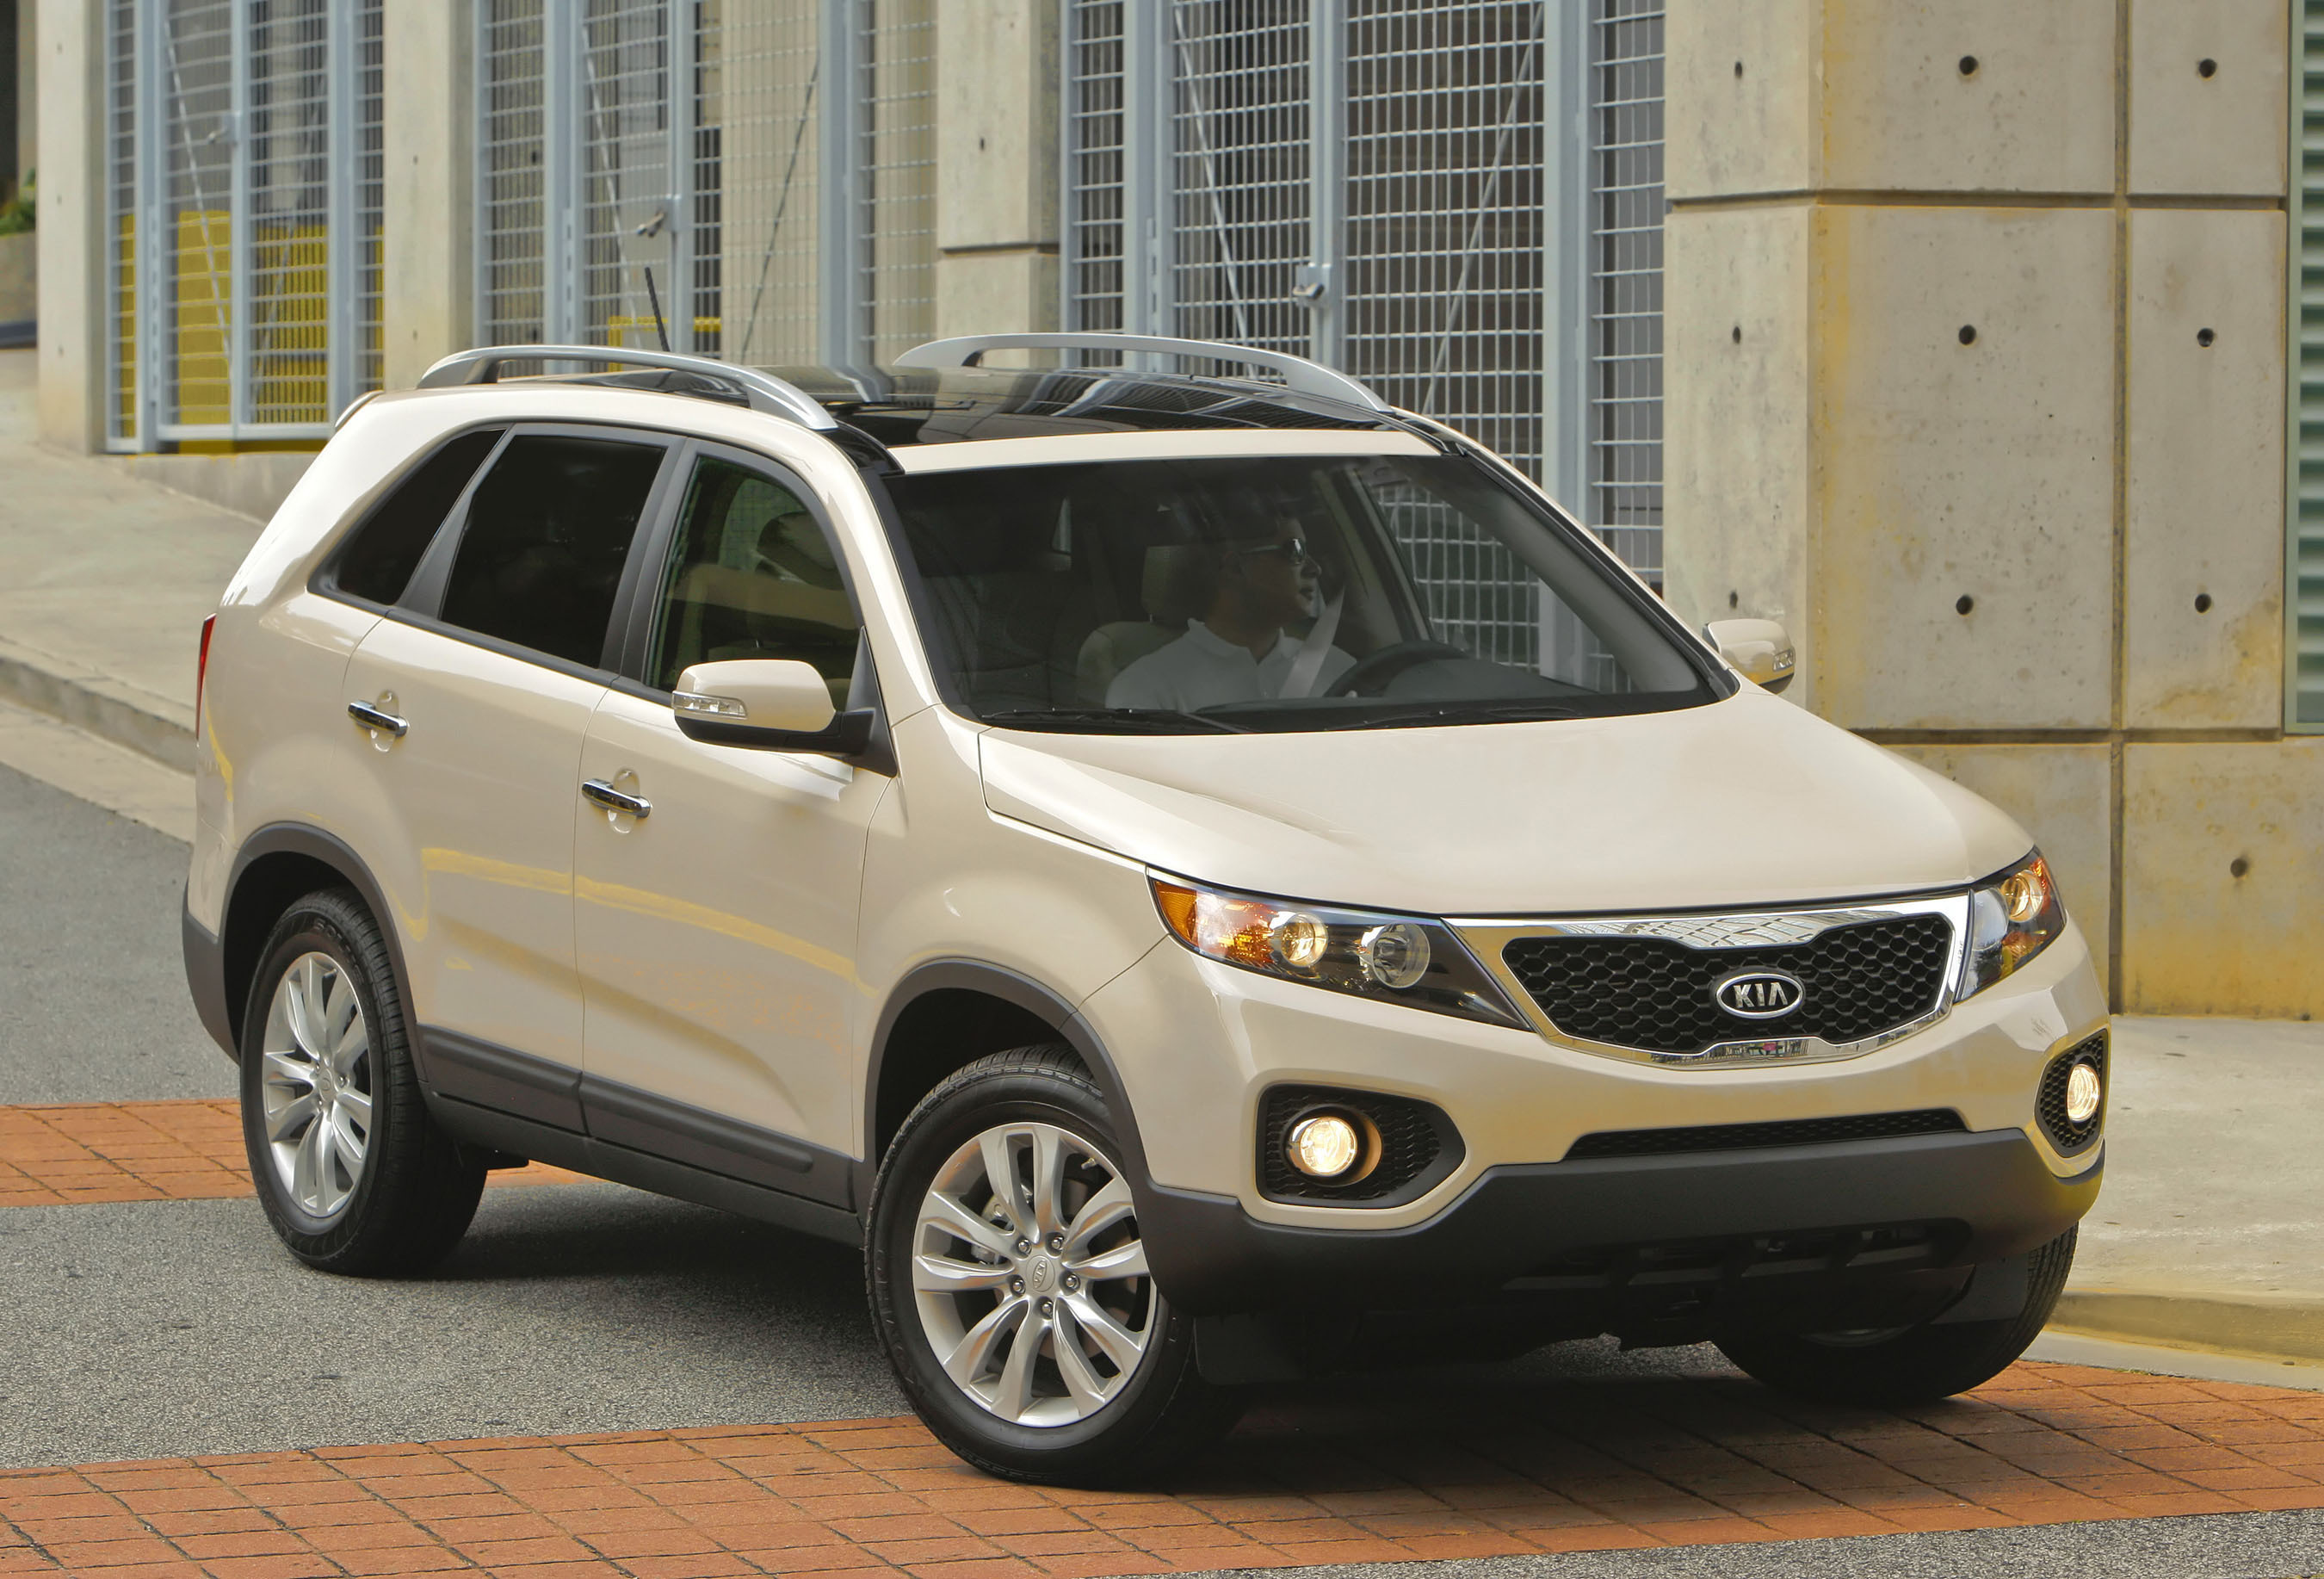 Kia sorento awarded 39 top safety pick 39 by insurance institute for highway safety